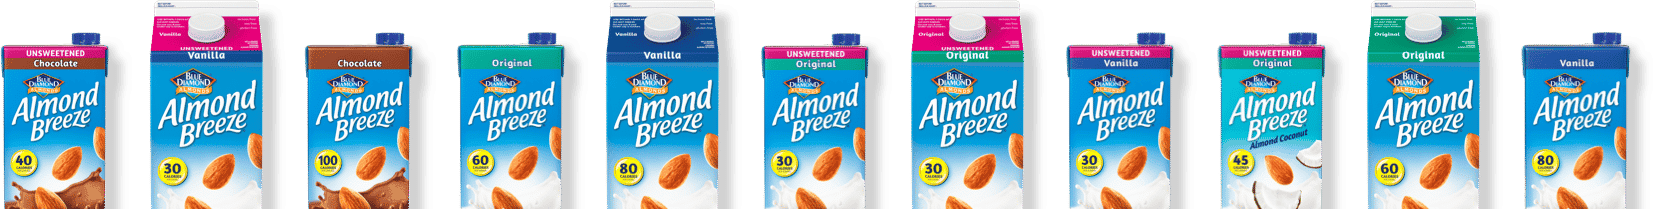 Row of Almond Breeze product packaging photos